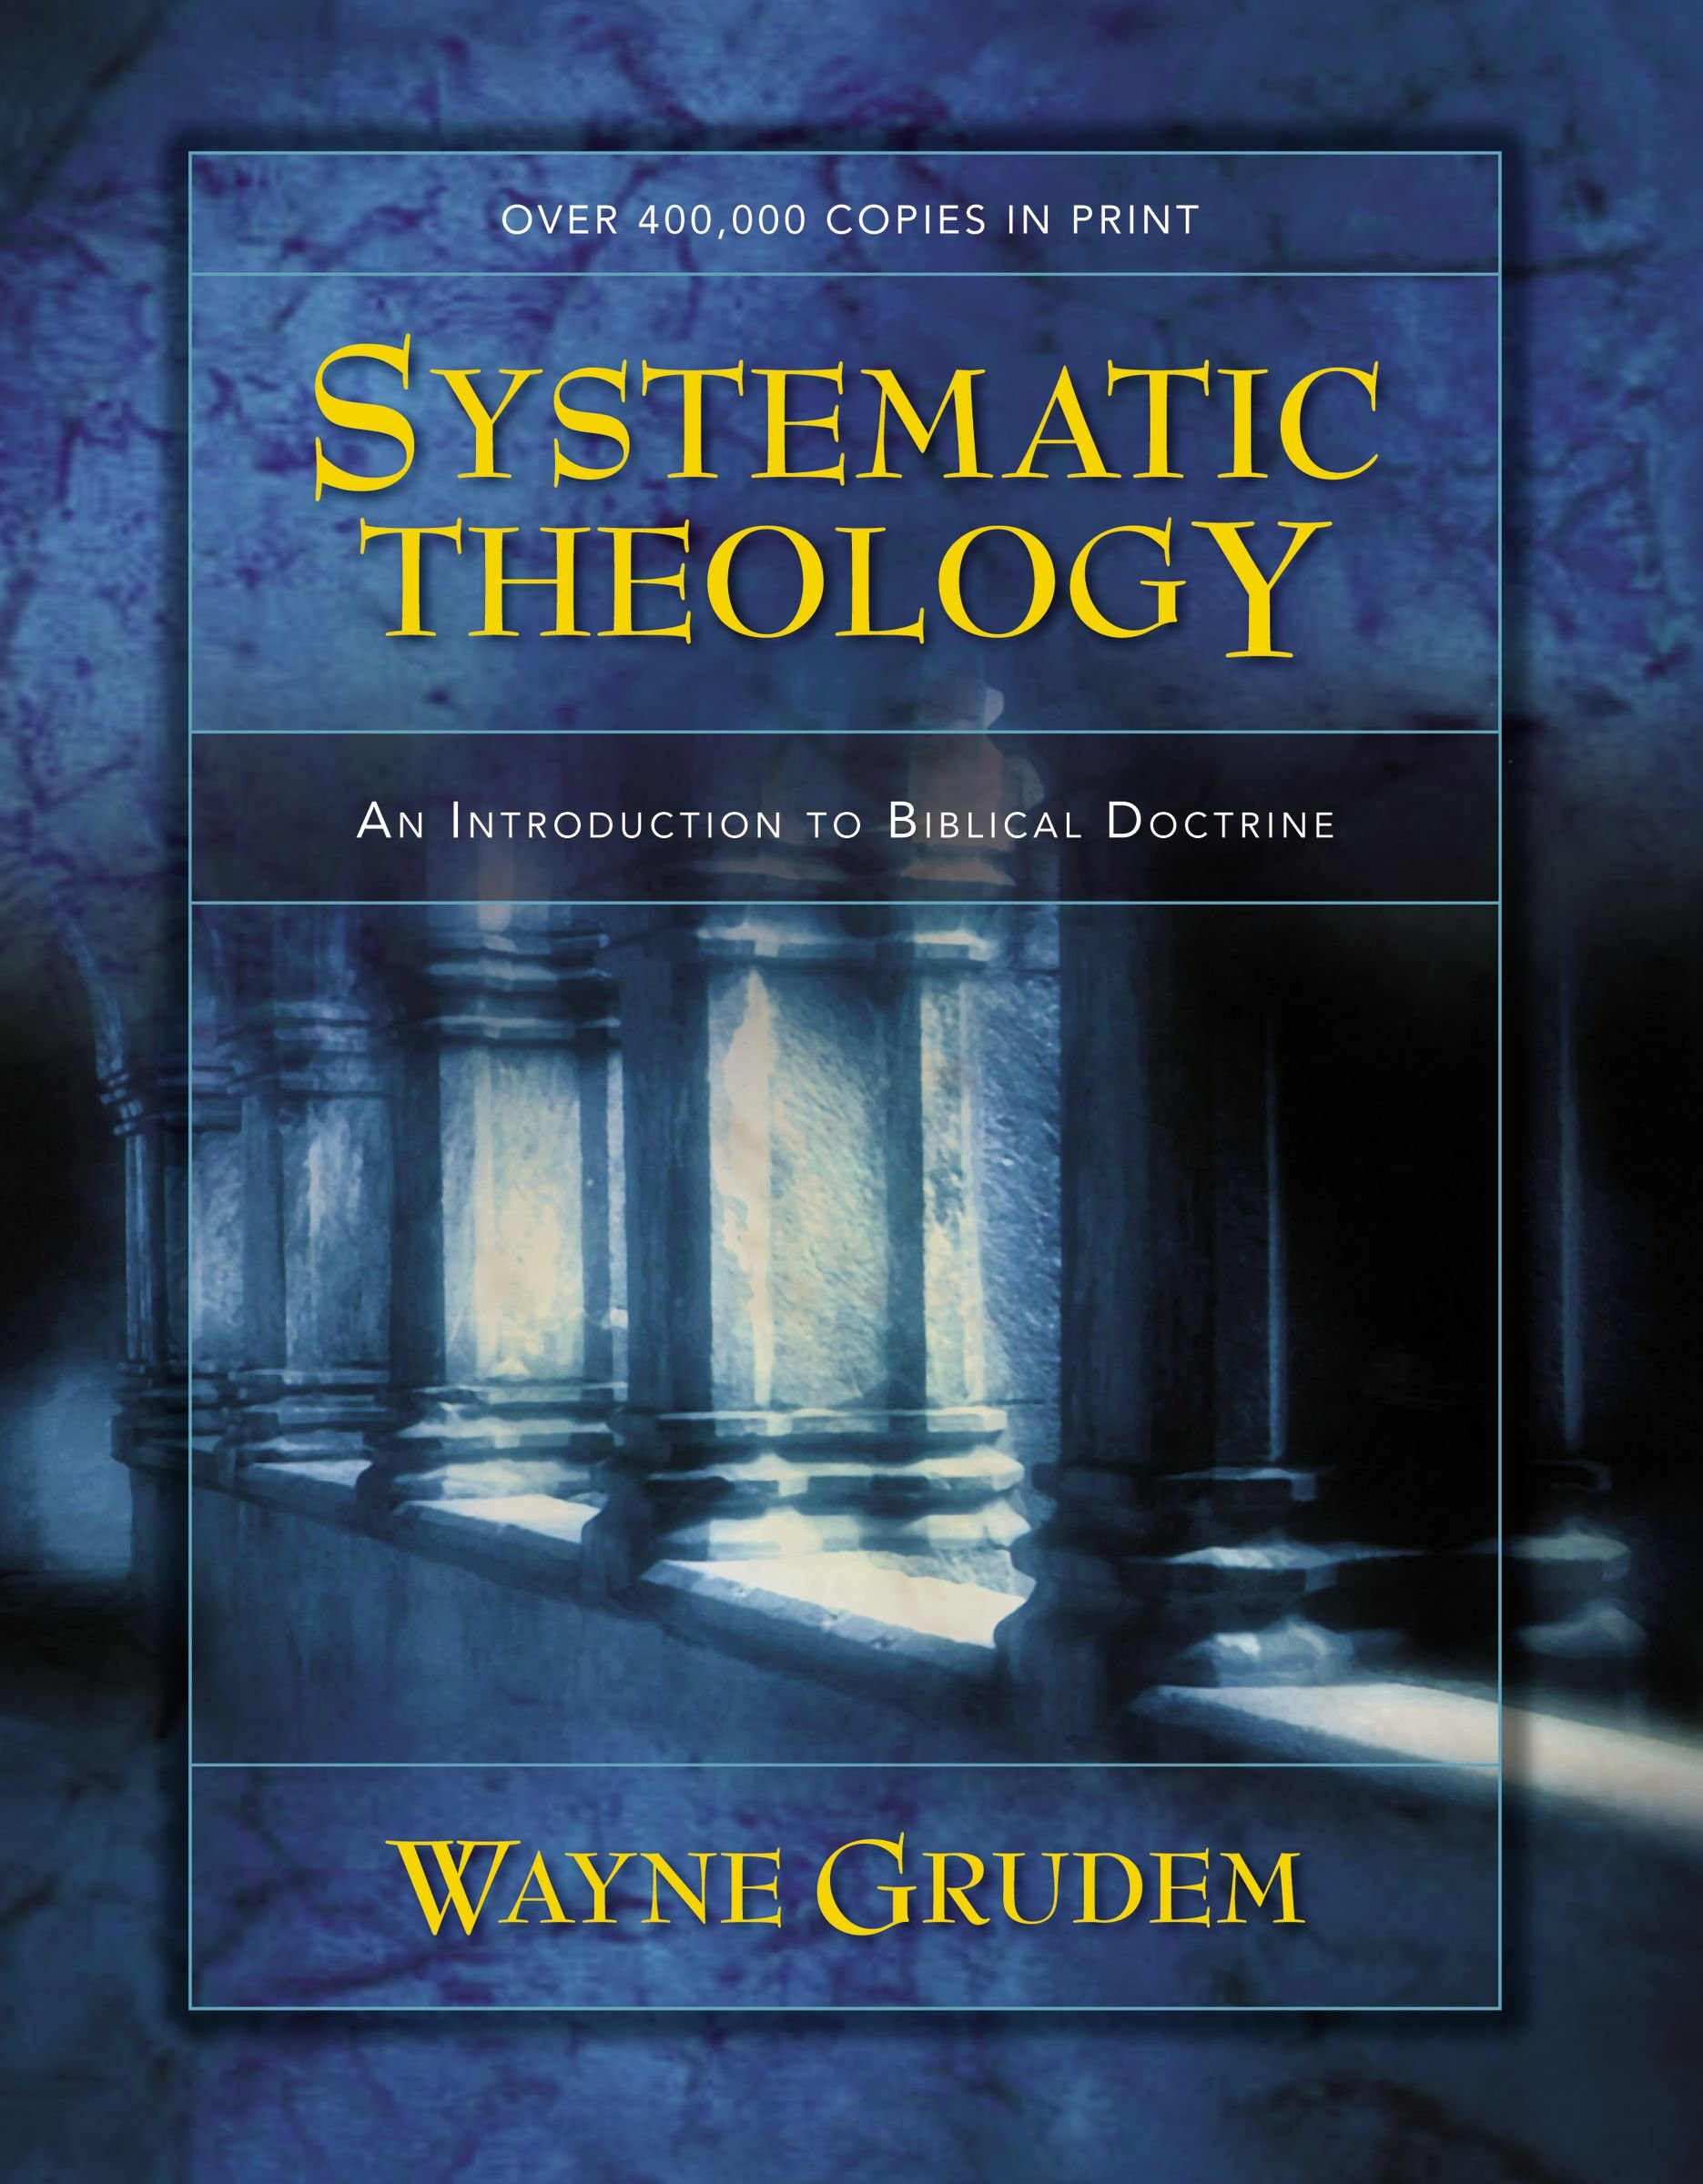 Download systematic theology (ebook) pdf free.